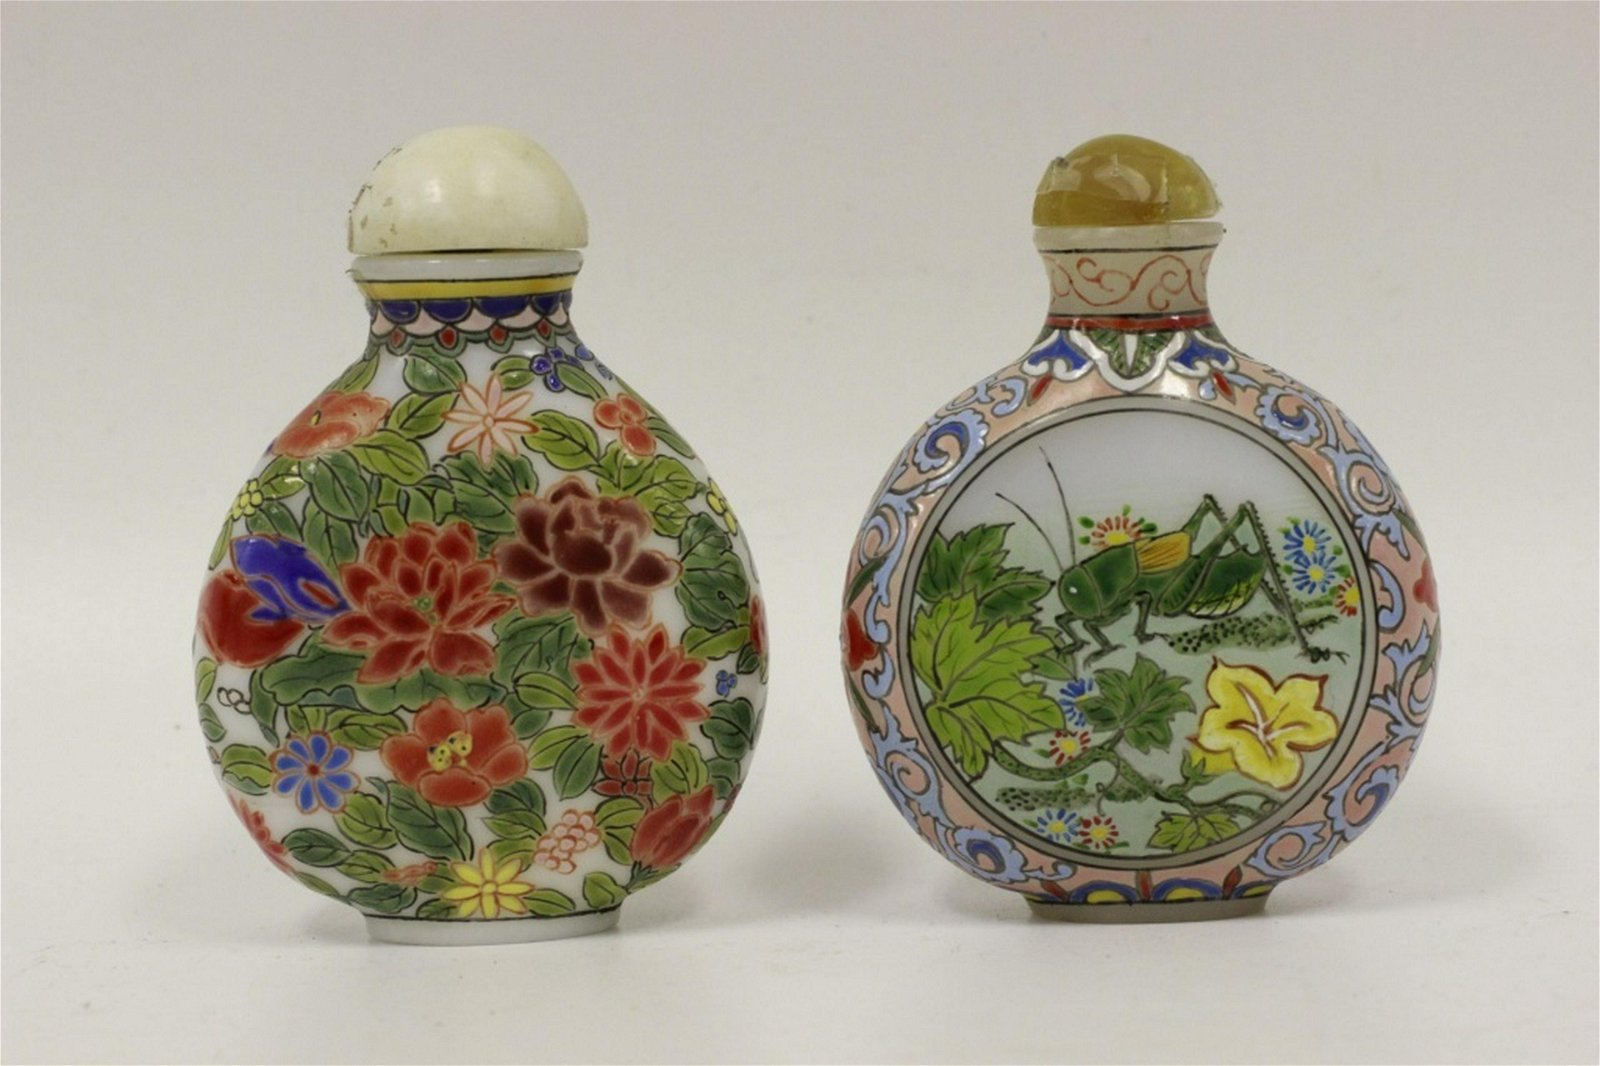 Chinese Lot of 2 Old Enameled Glass Snuff Bottles